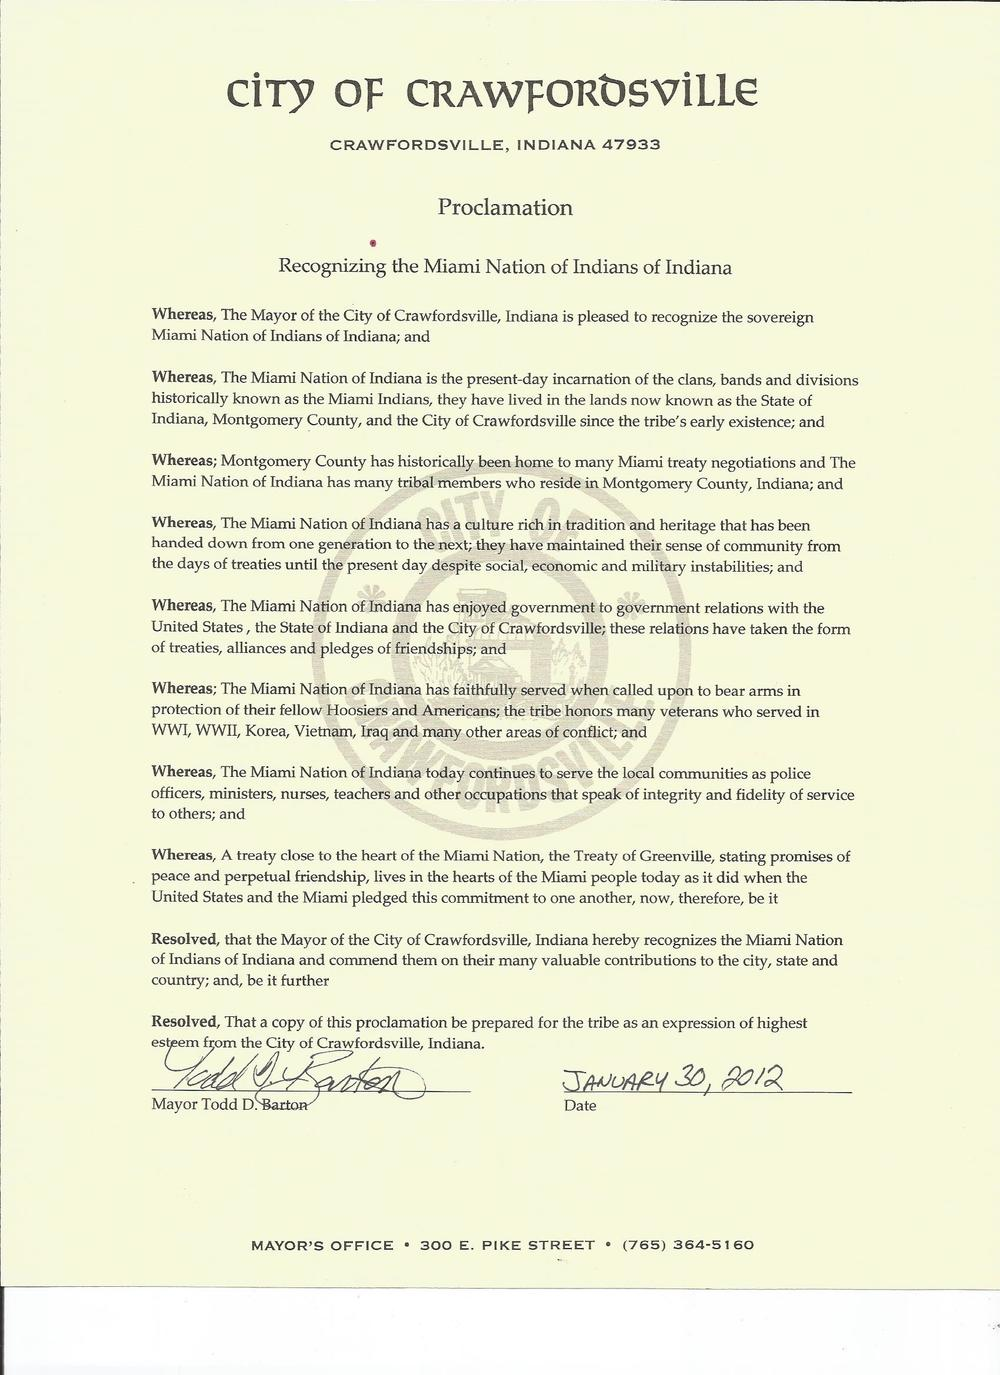 Proclamation City of Crawfordsville.jpg